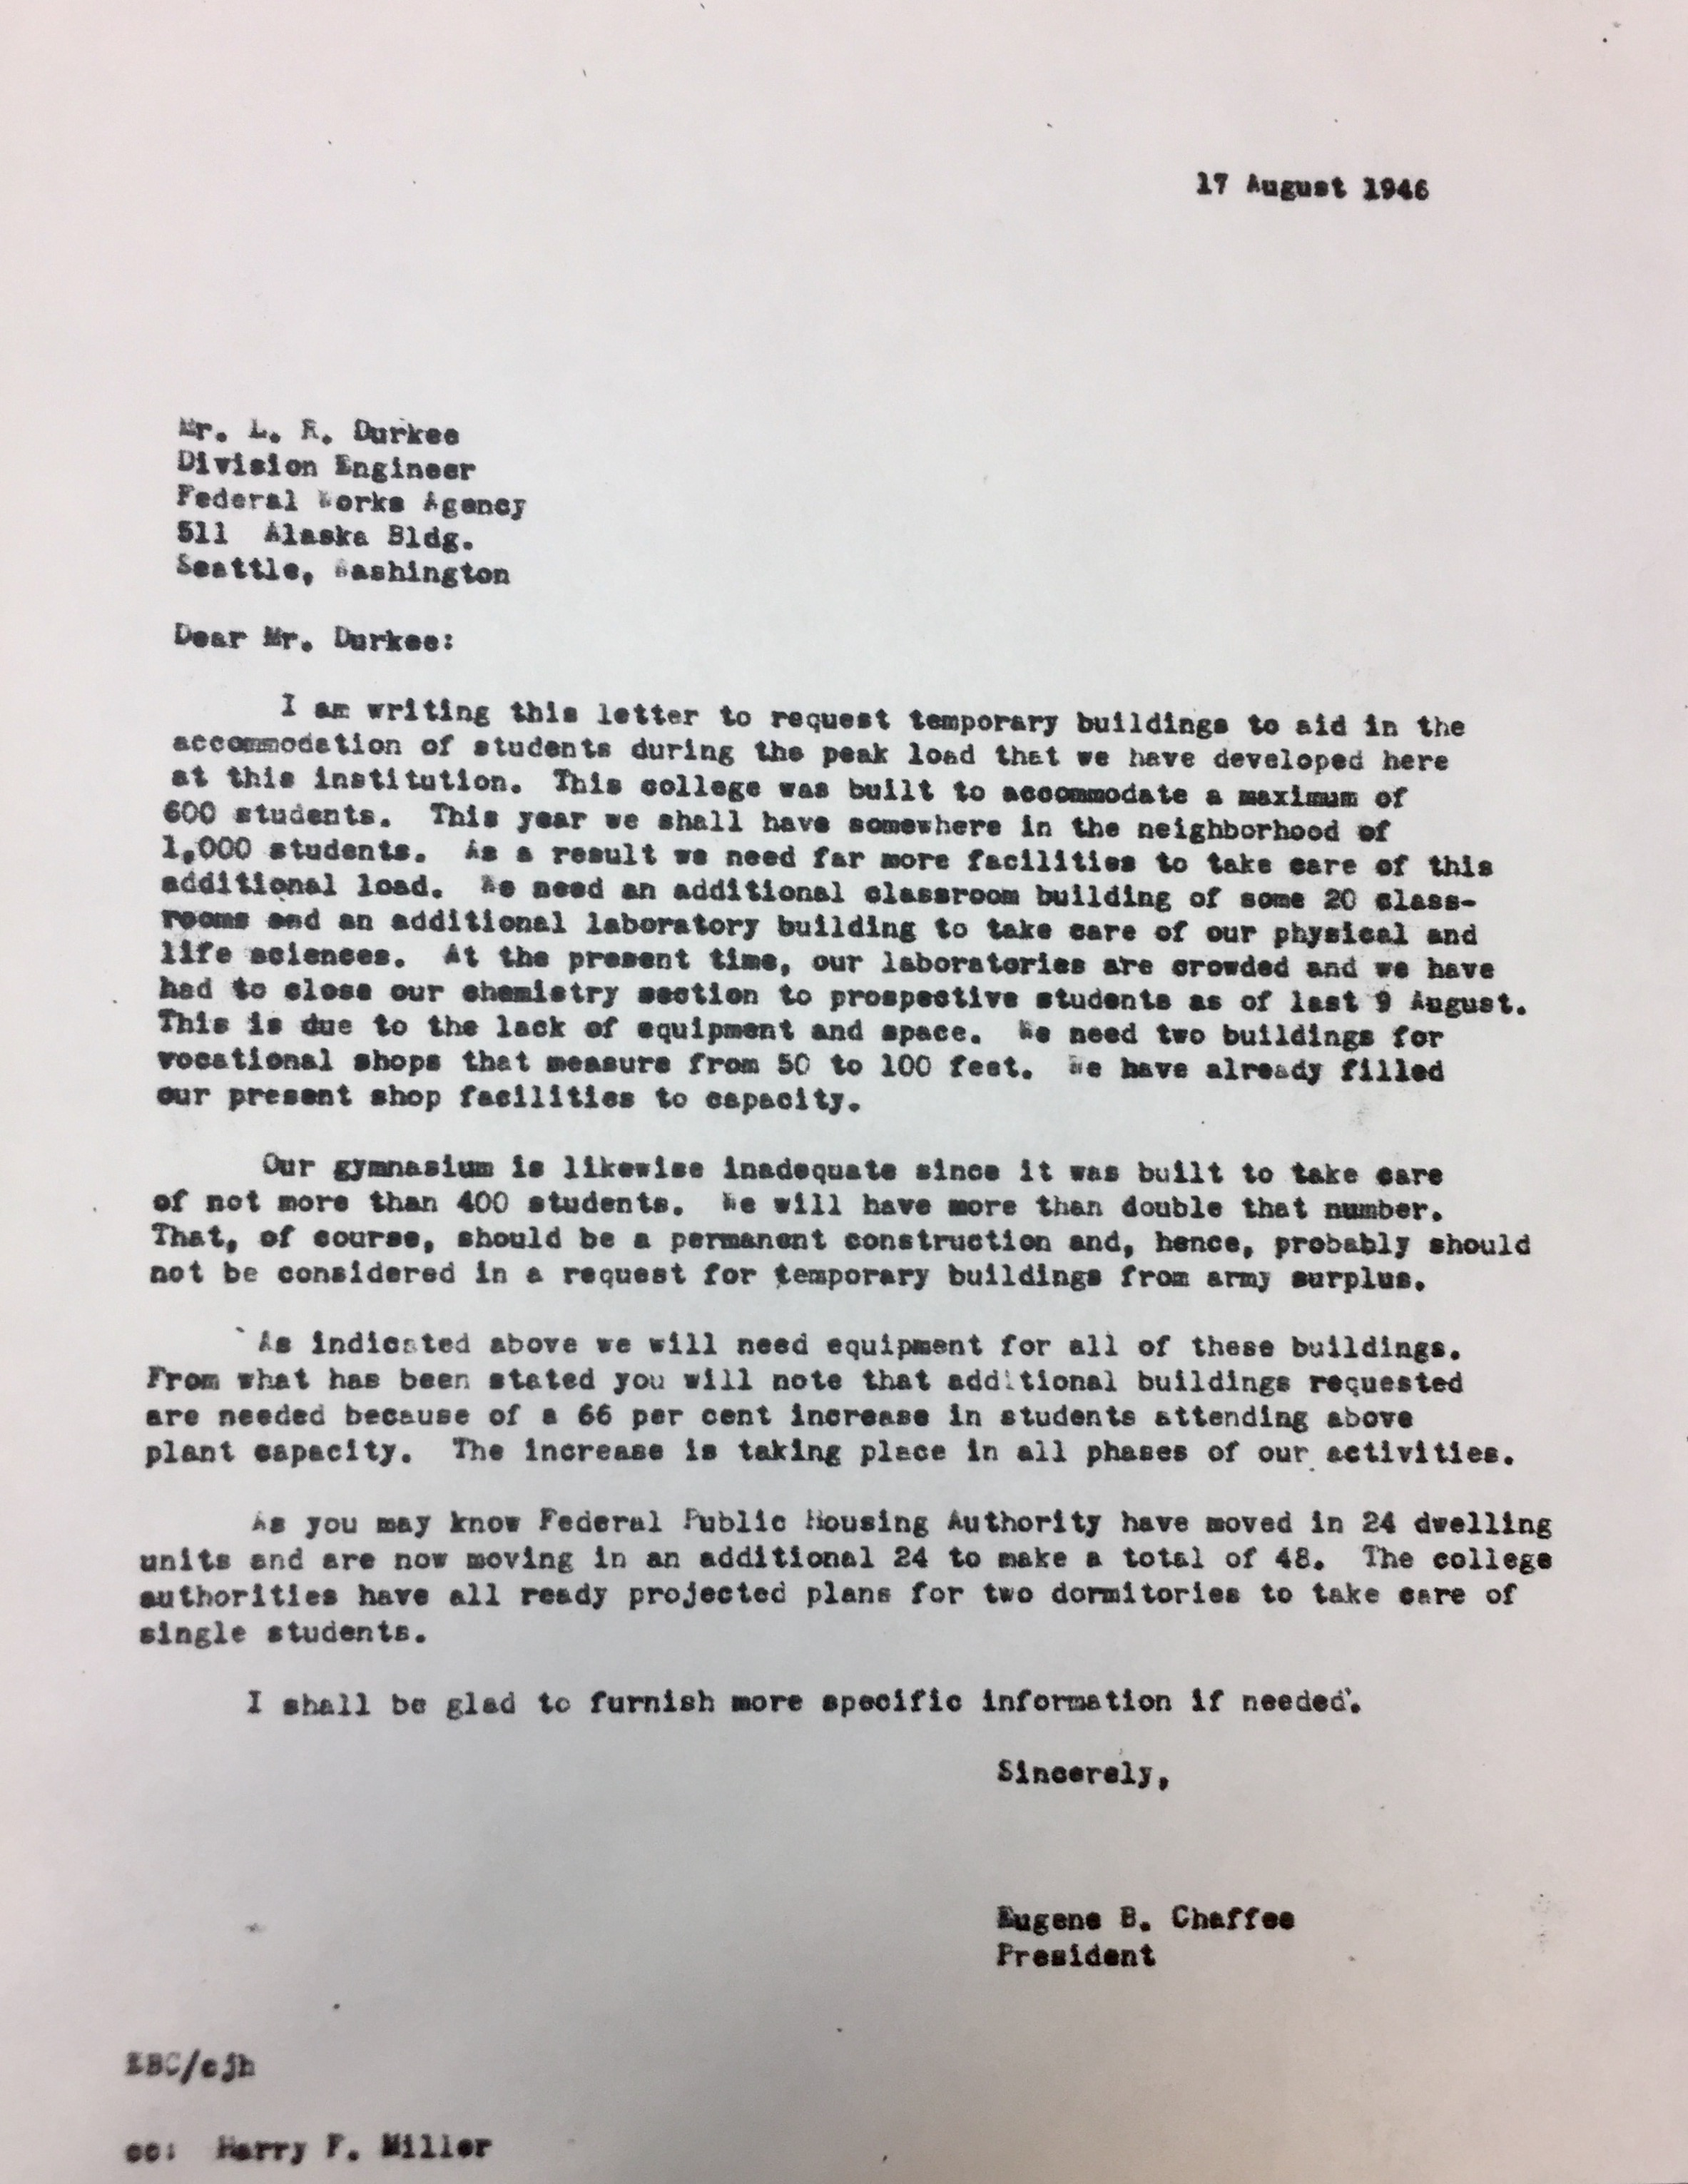 Letter sent from President Chaffee while deployed in Navy proposing new dormitories for Boise State College (August 17, 1946)